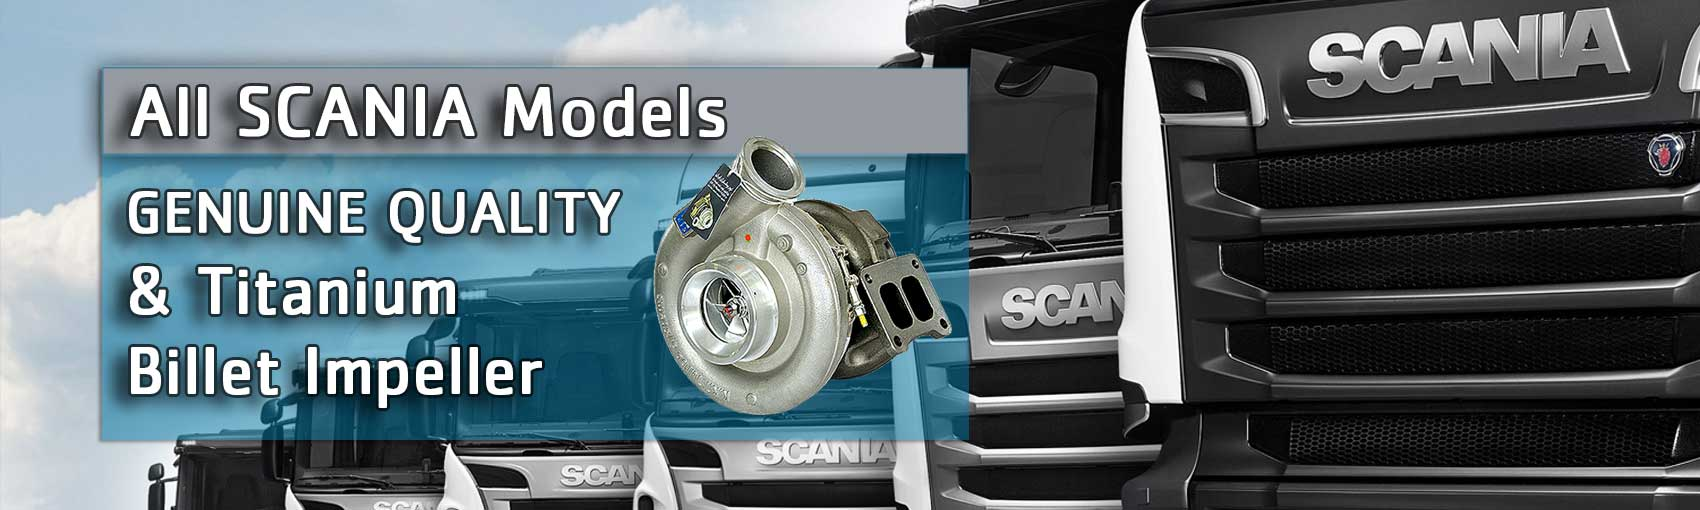 scania_series_kkt_turbochargers